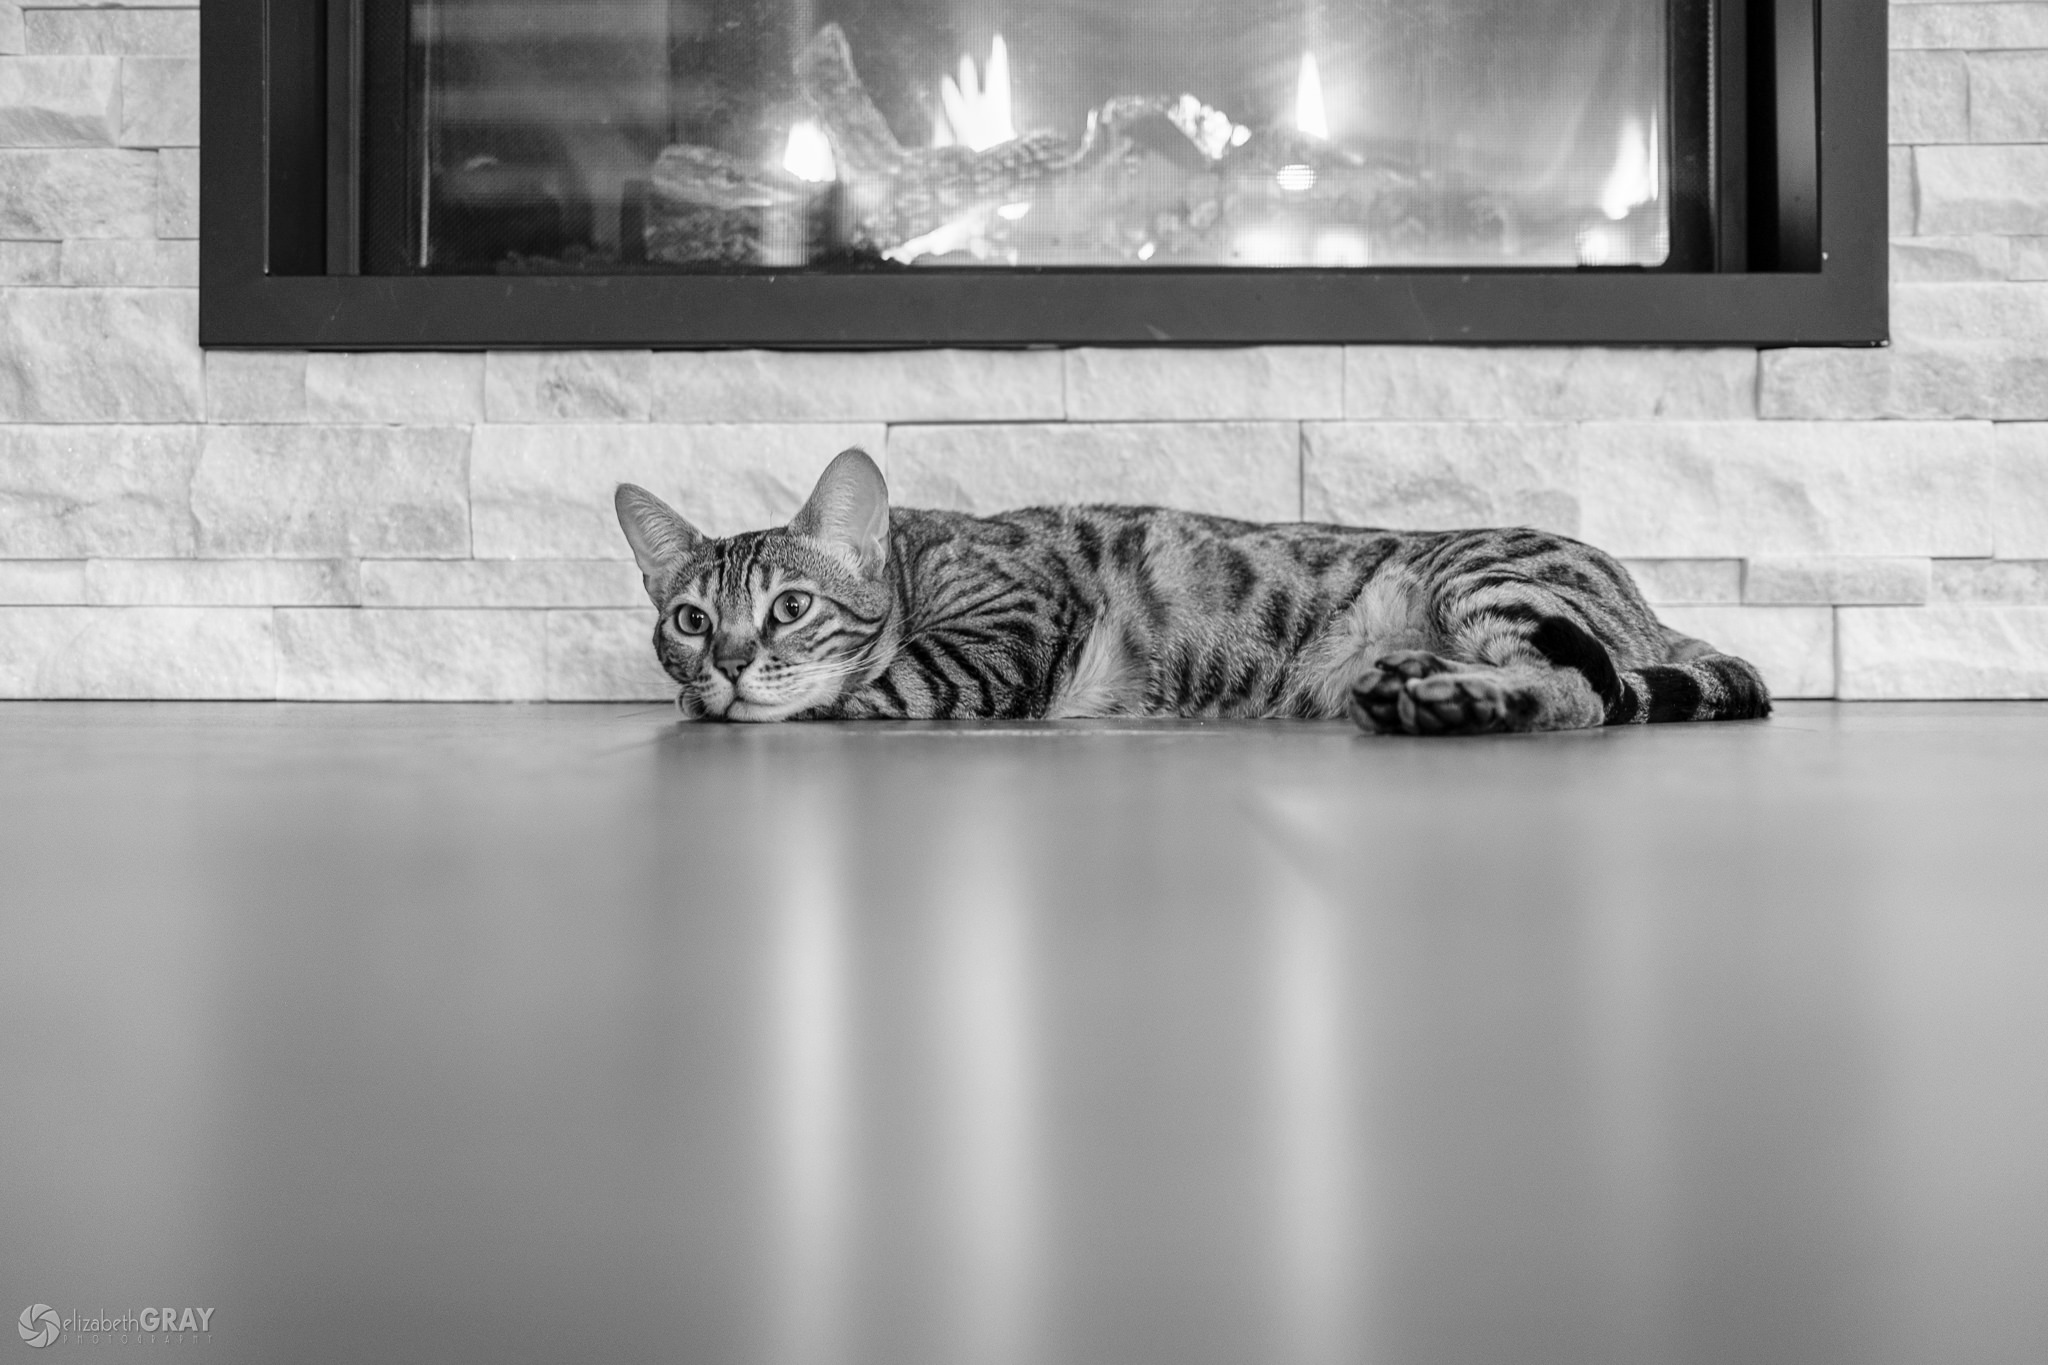 Fireplace Day Dreams